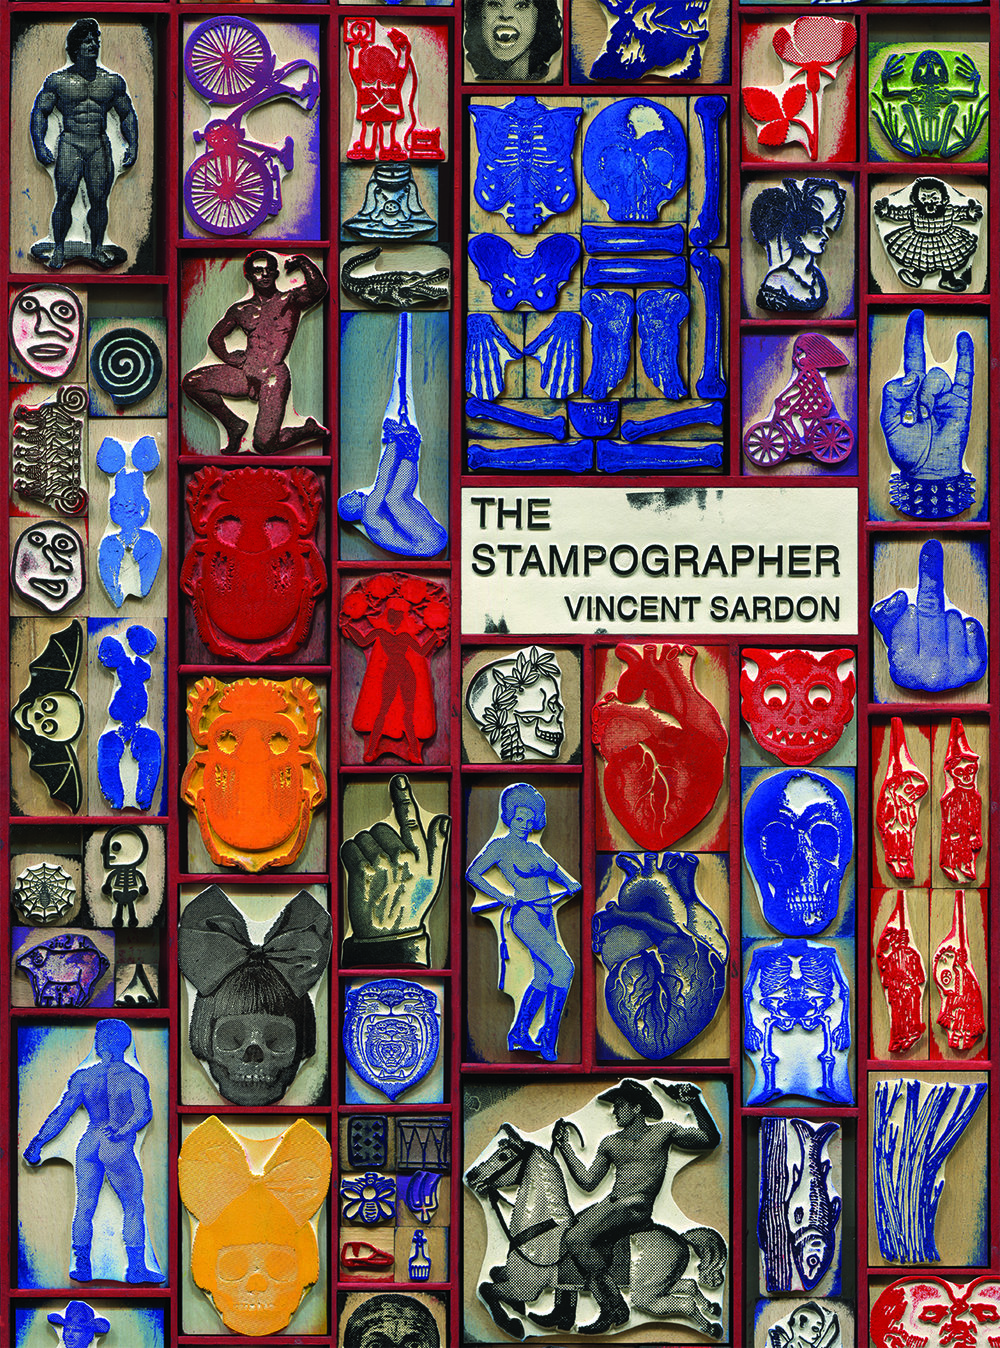 Excerpt from Vincent Sardon: The Stampographer(Siglio Press, 2017). All rights reserved